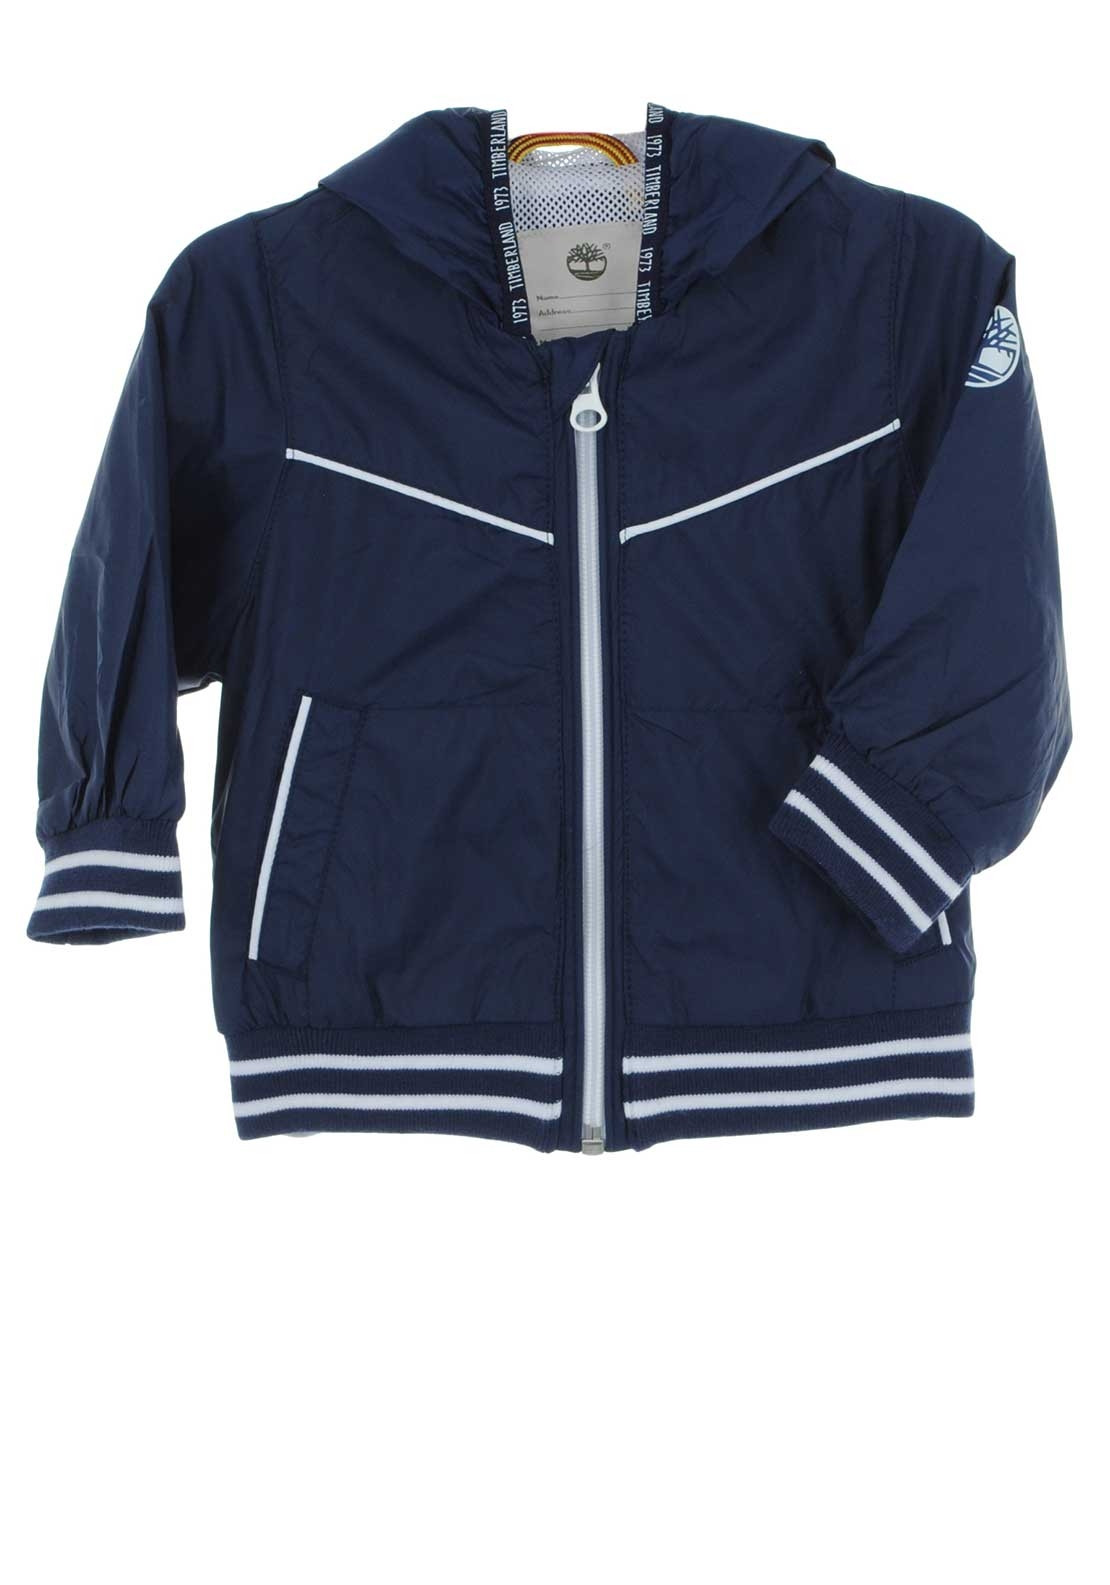 921075b174e2a Timberland Baby Boys Windbreaker Jacket, Navy. Be the first to review this  product